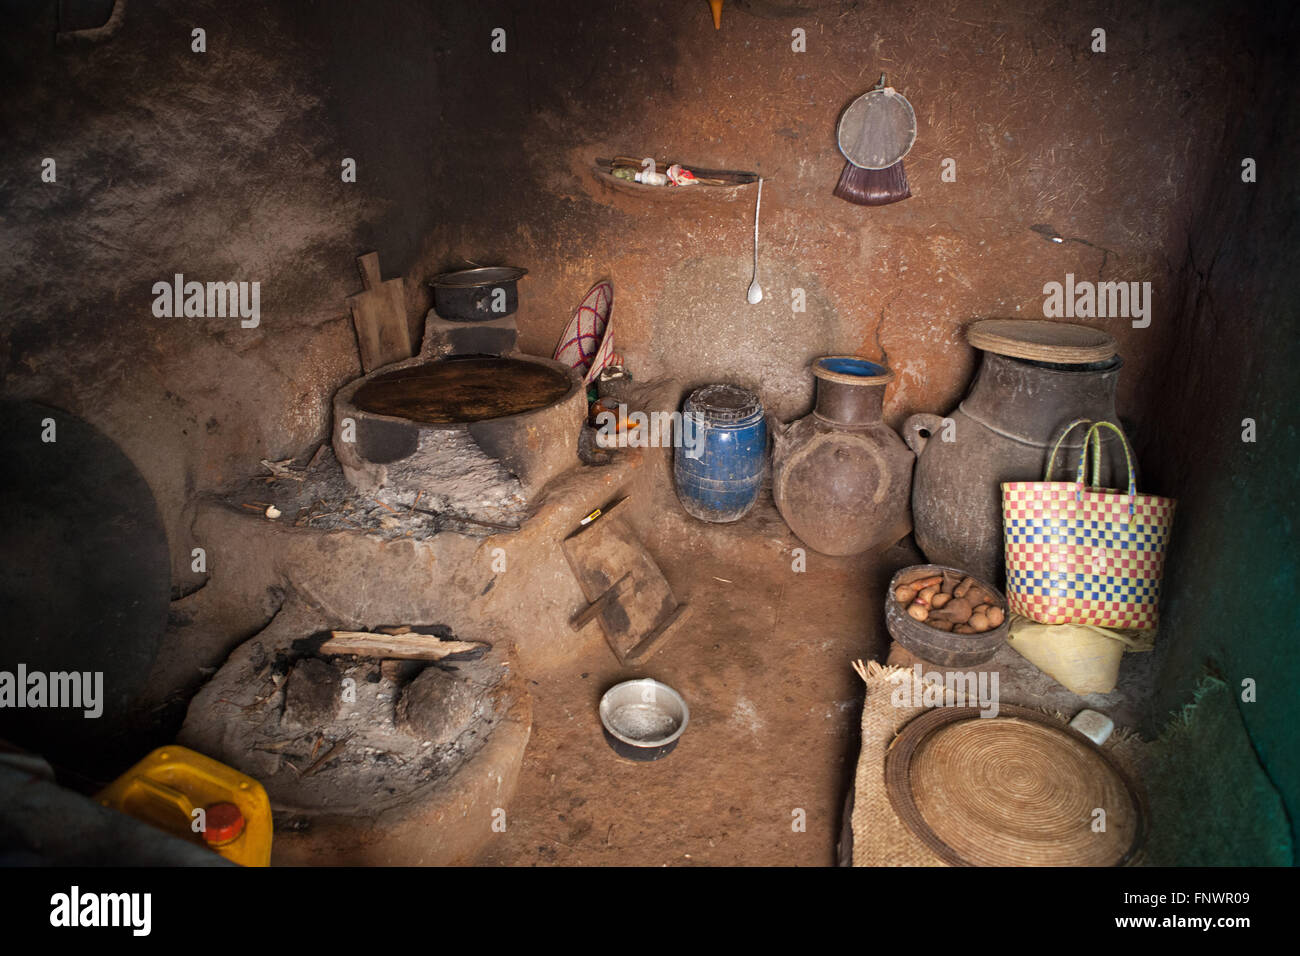 The kitchen inside a mud hut in the village of Bahir Dah, Ethiopia, Africa. - Stock Image